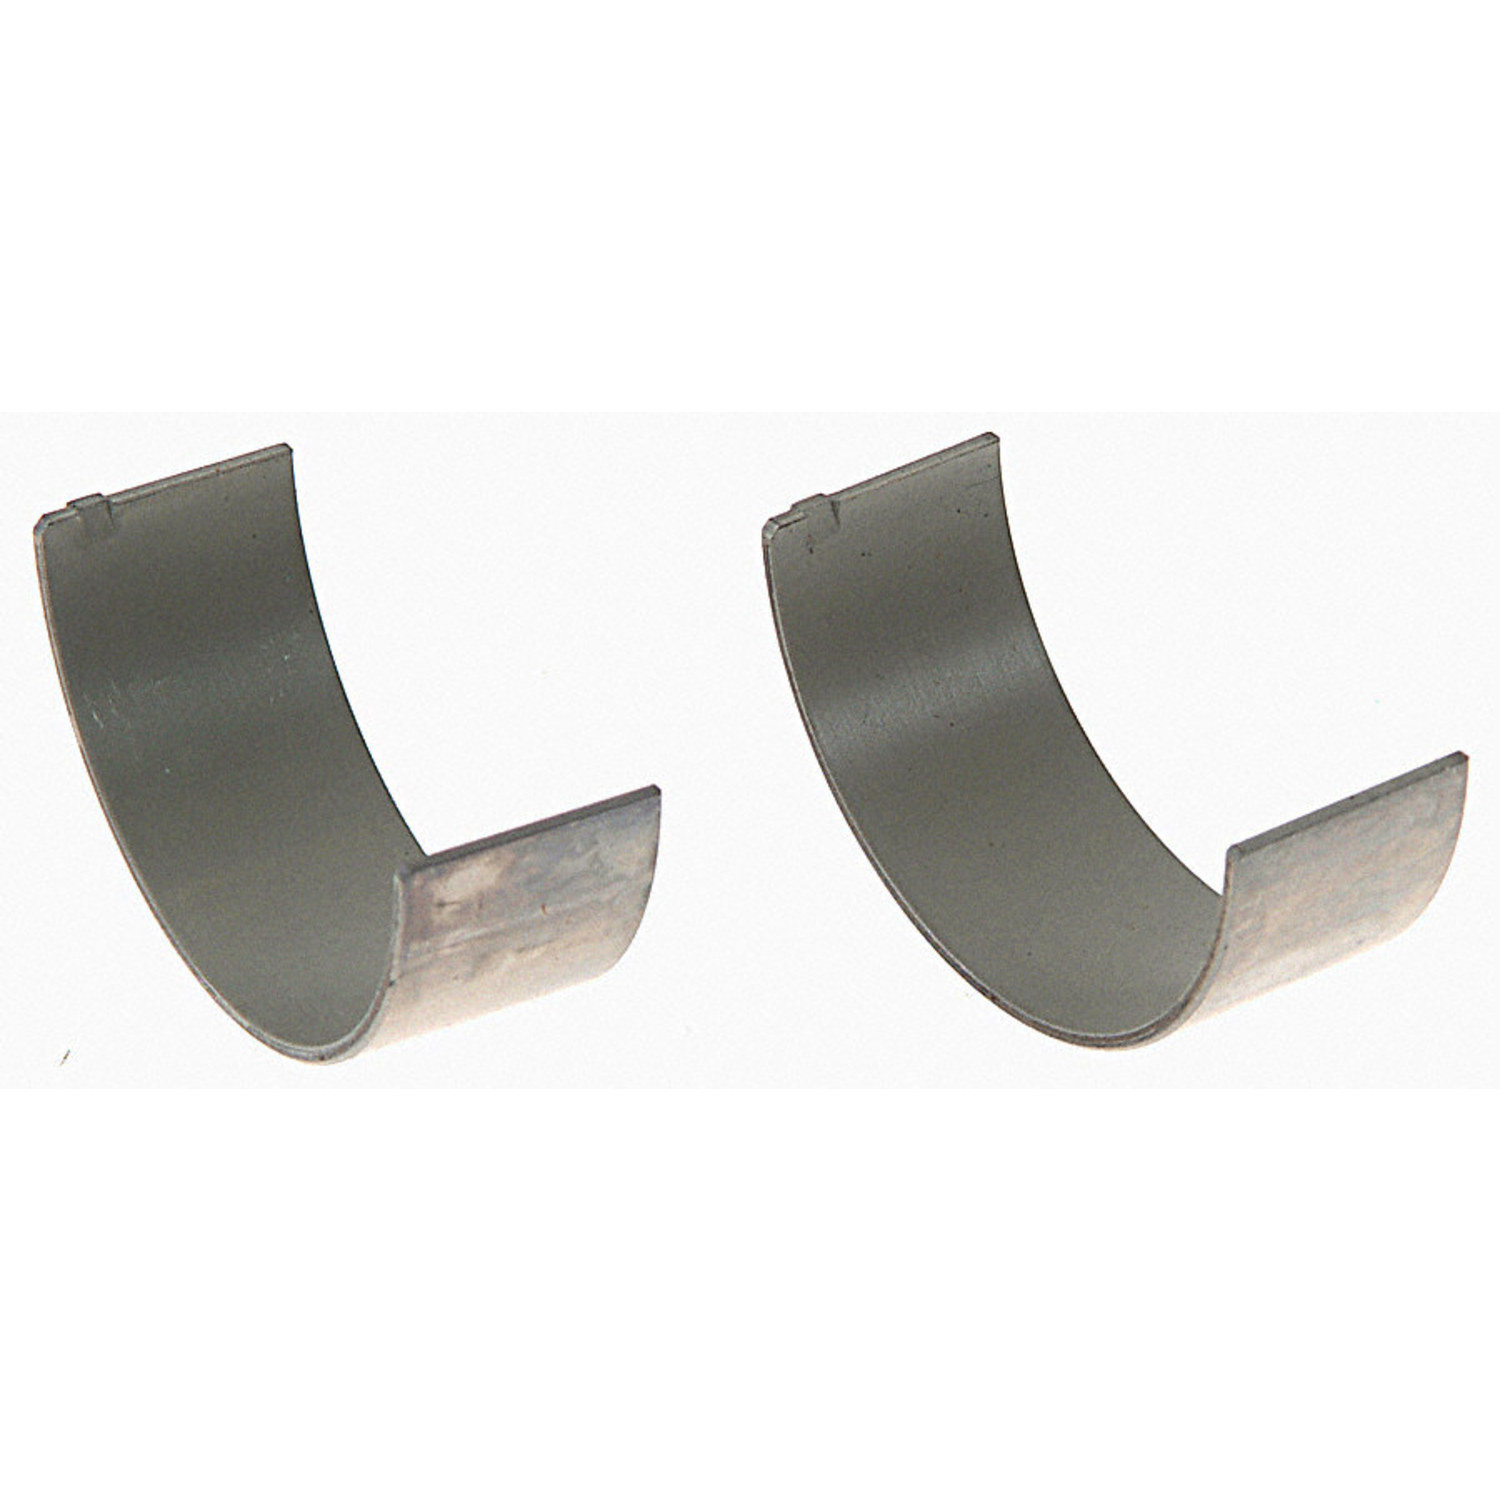 SEALED POWER - Engine Connecting Rod Bearing - SEA 2555CP 2